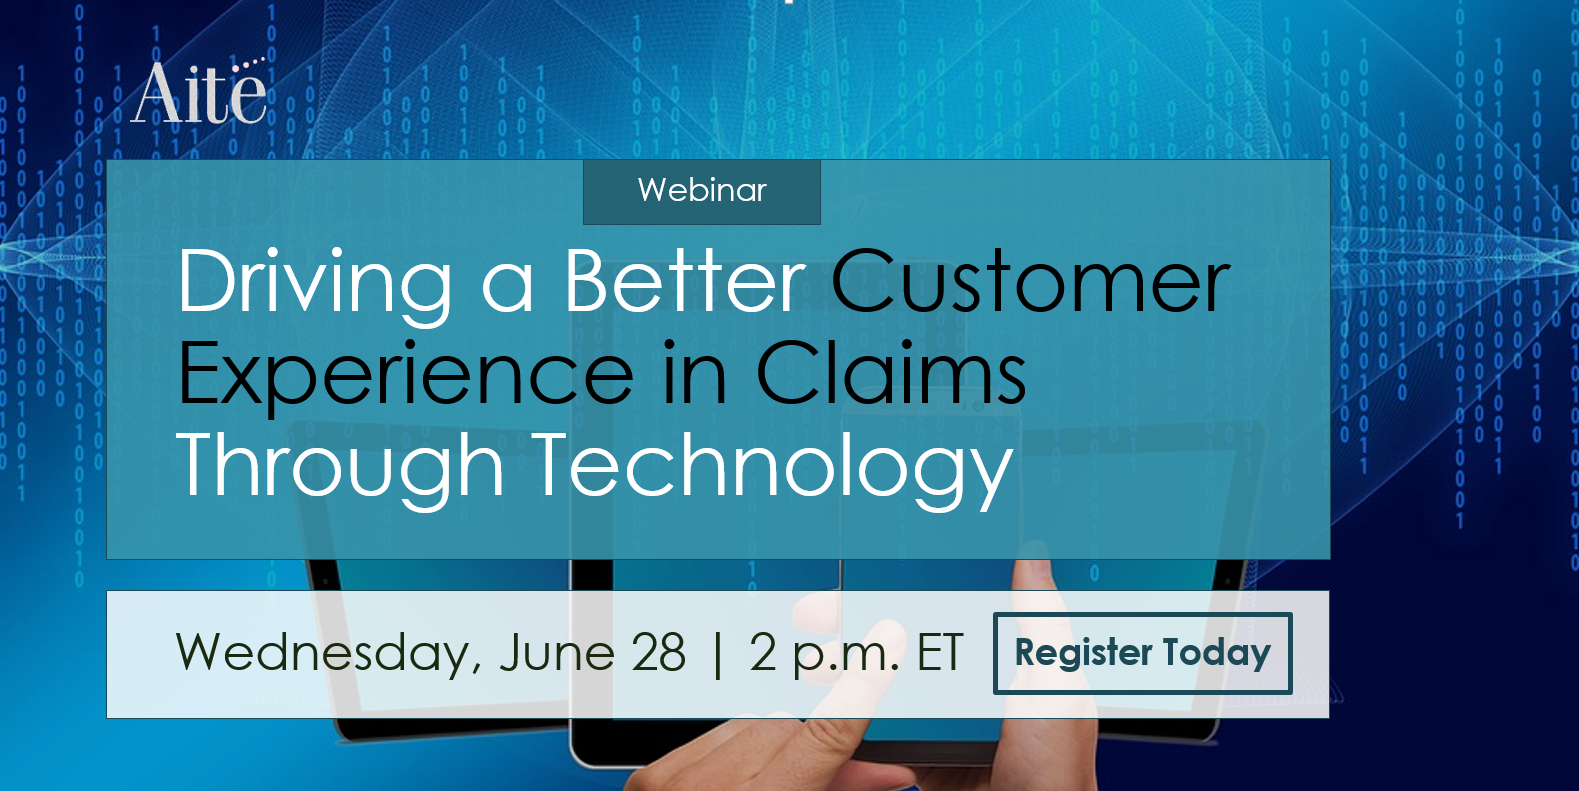 Driving A Better Customer Experience in Claims Through Technology Webinar